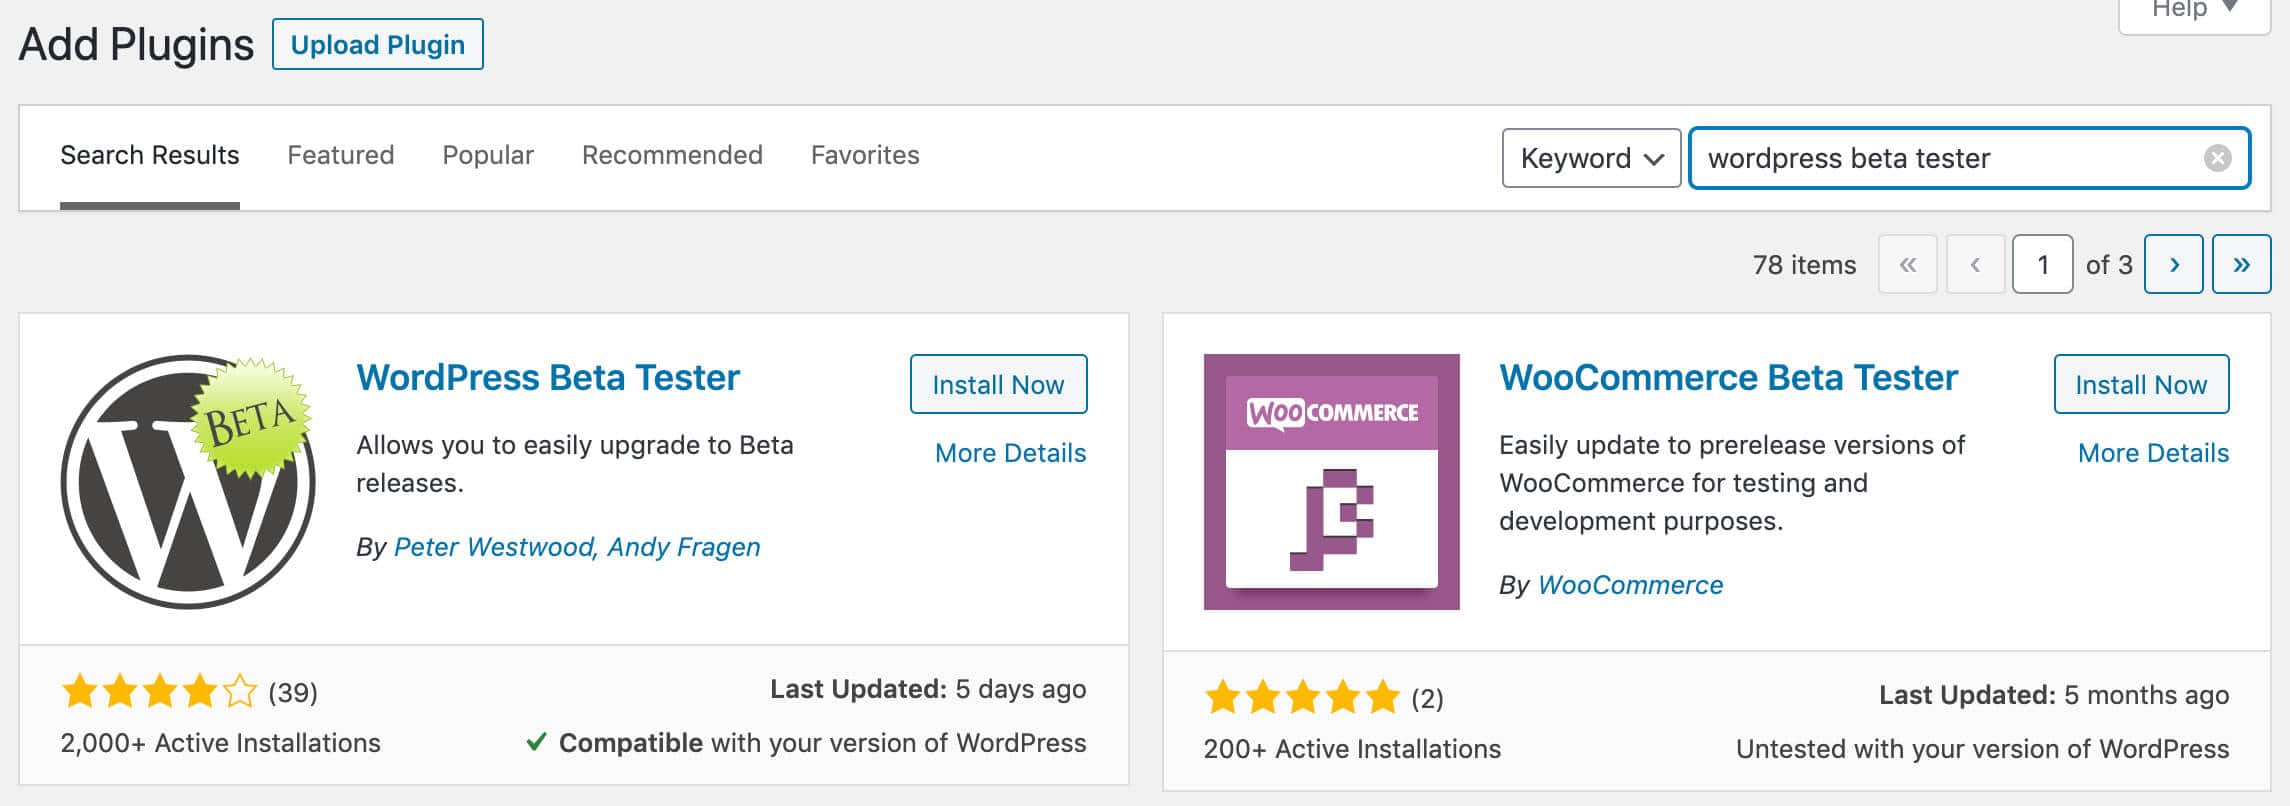 Installer l'extension WordPress Beta Tester